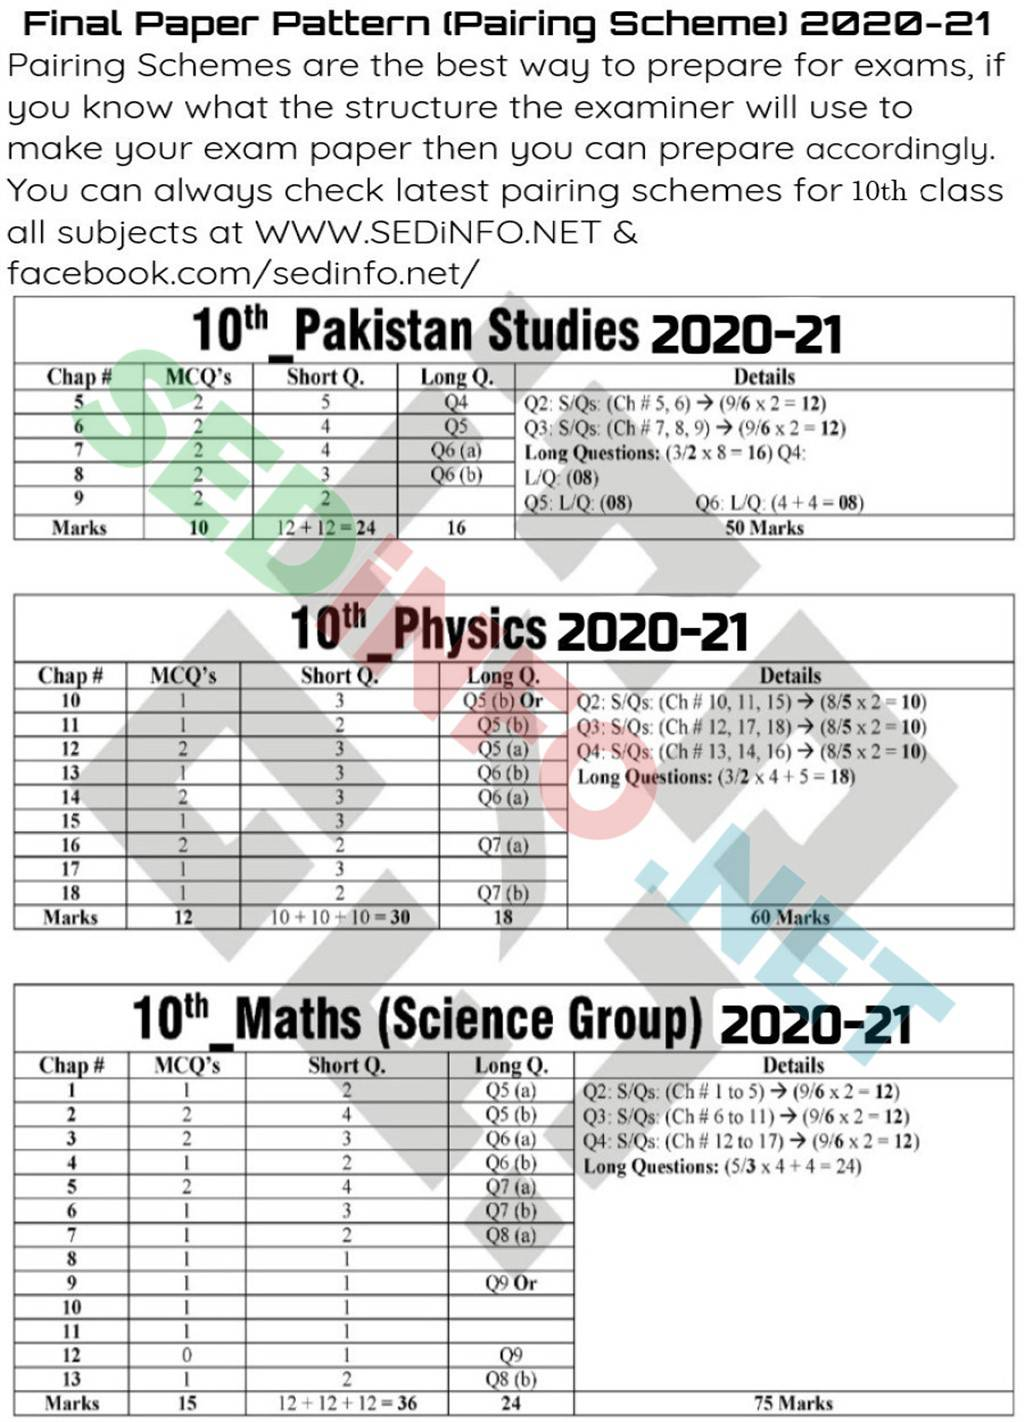 10th-Pairing-Schemes-2020-21-Pak-Studies-Physics-Math-Science-Group-Page-3